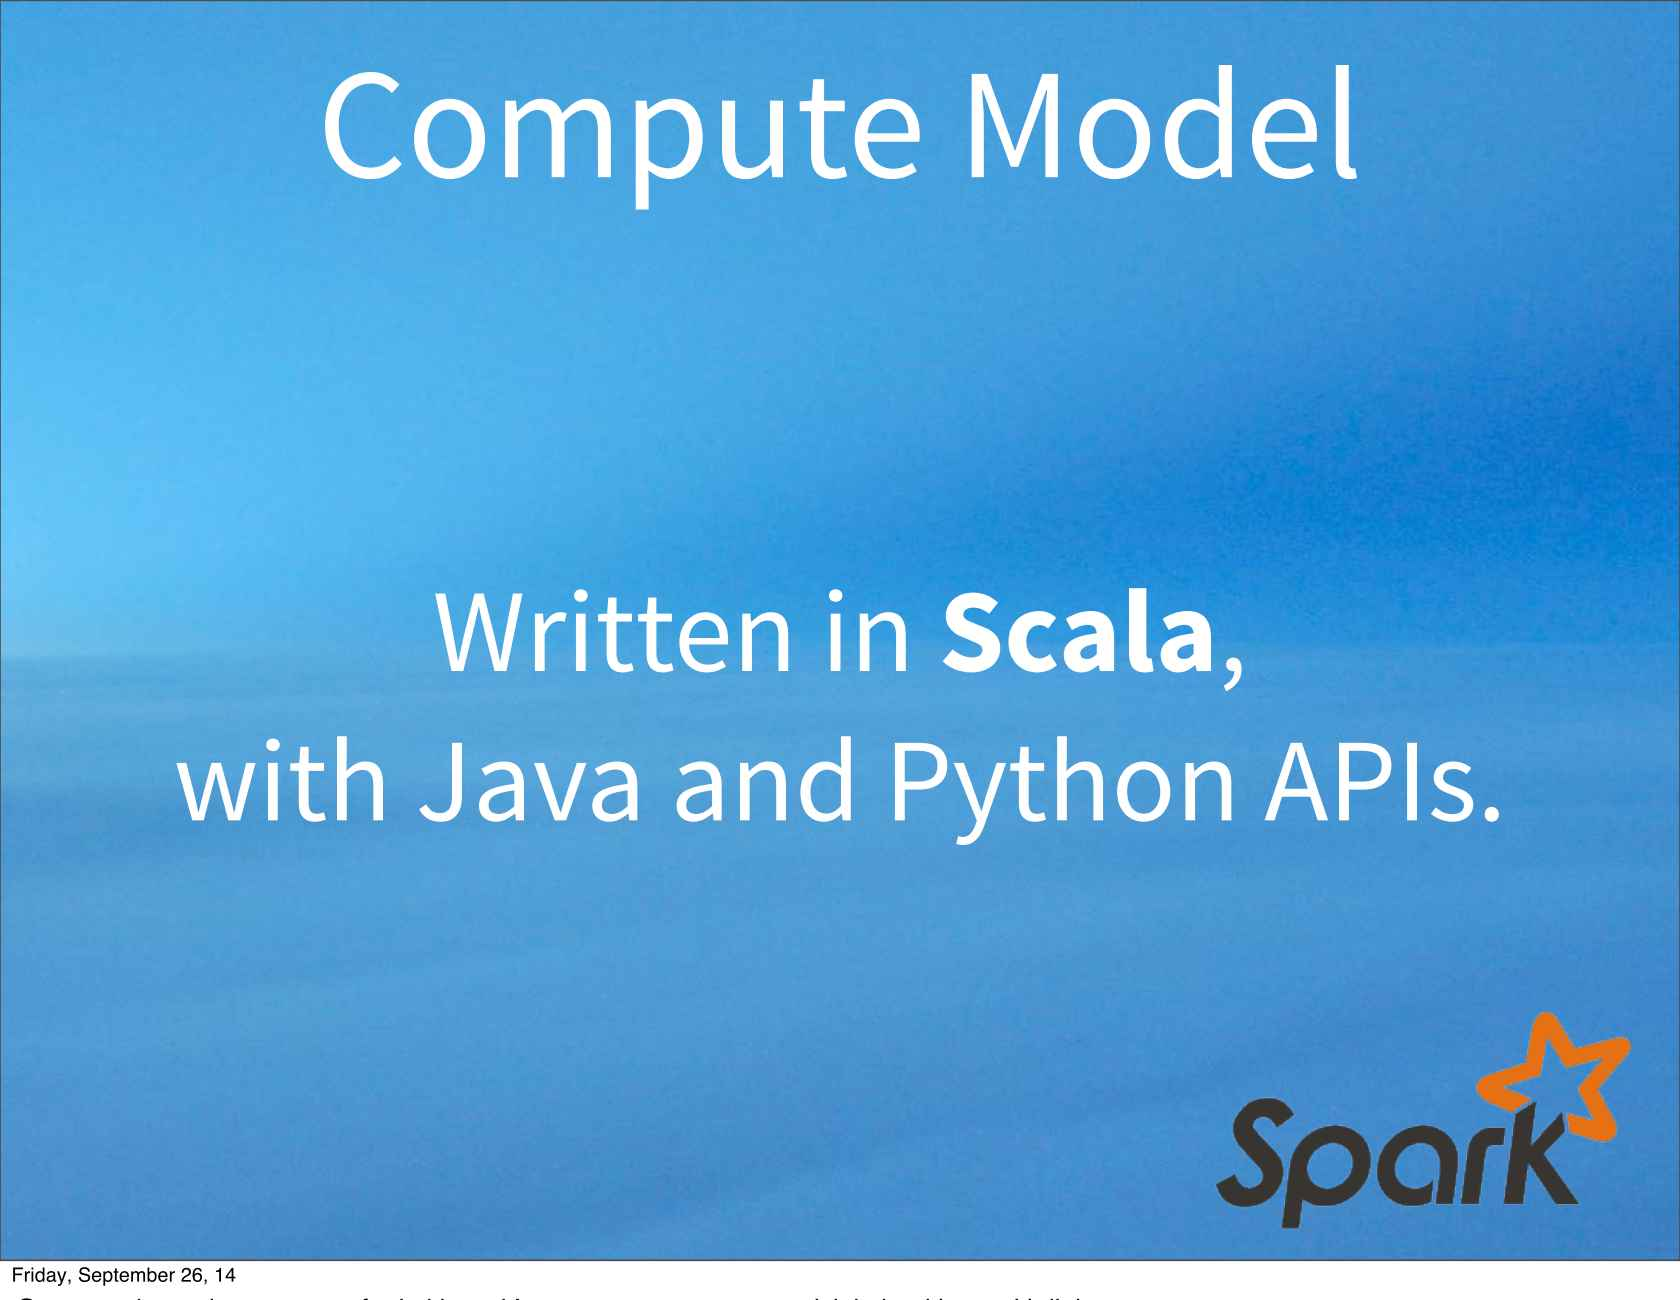 Why Spark Is the Next Top (Compute) Model